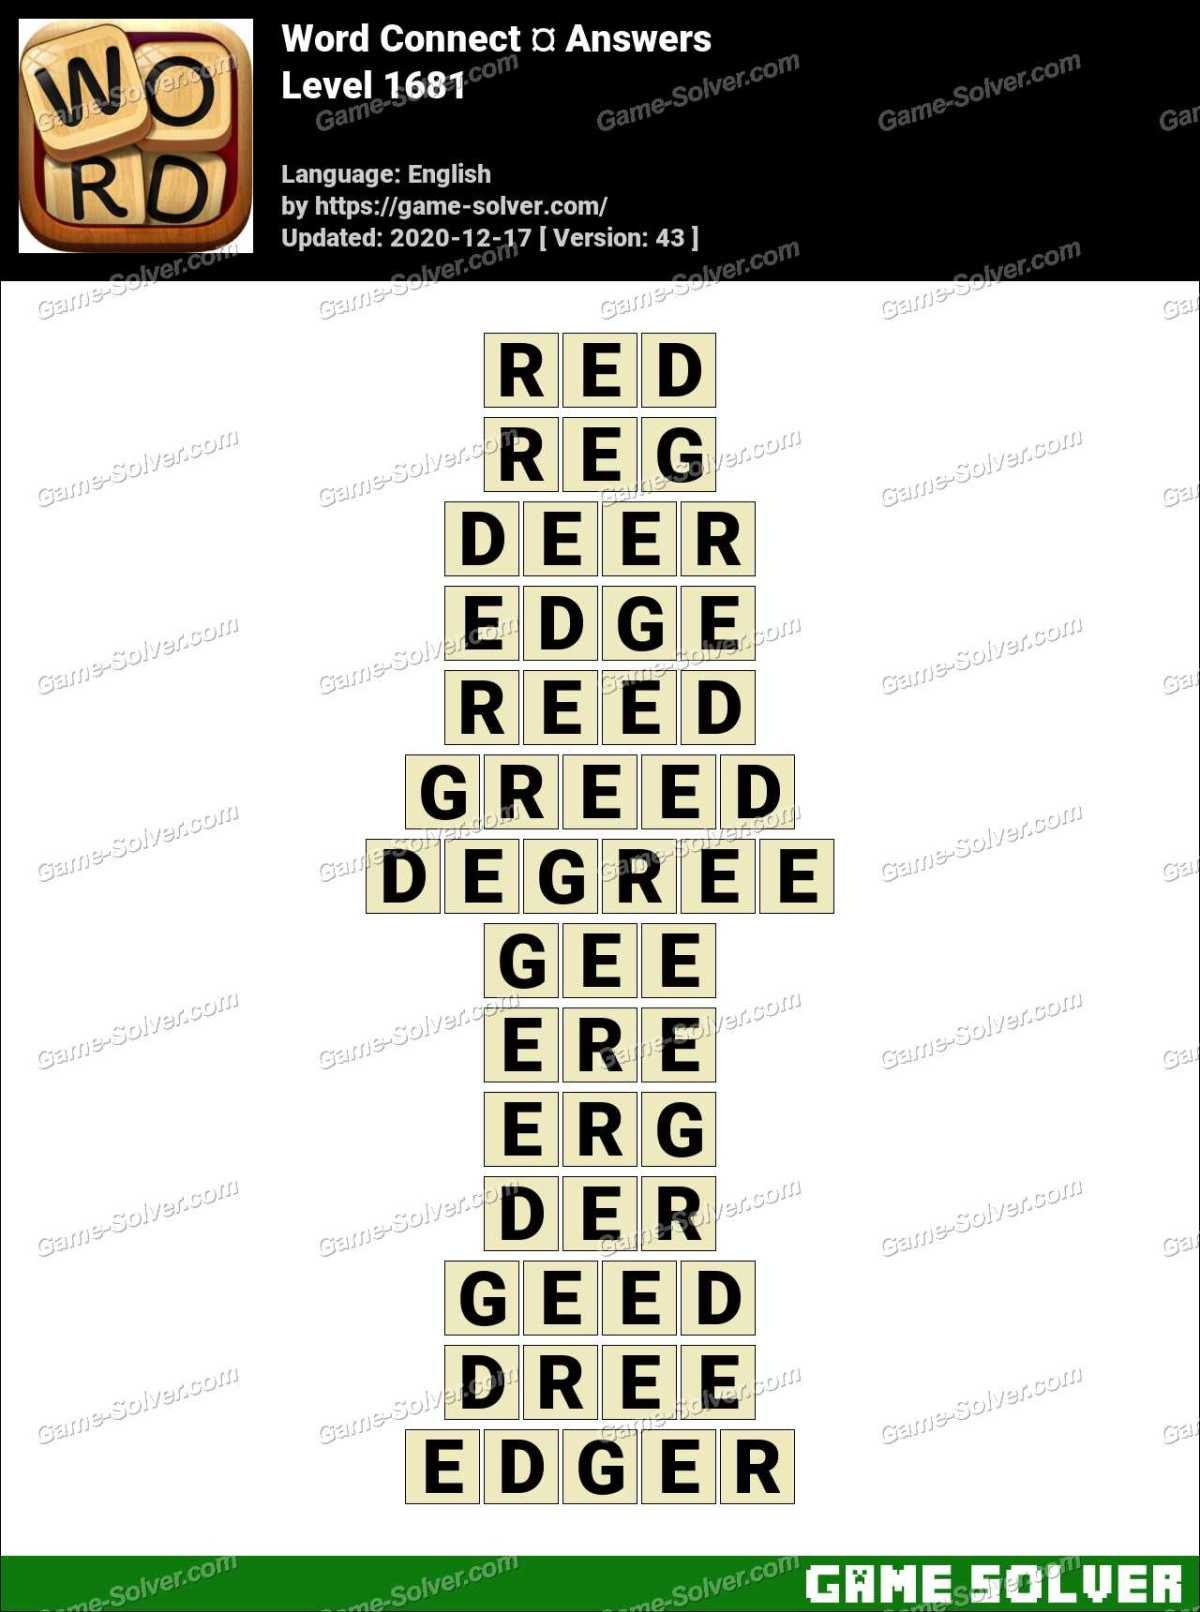 Word Connect Level 1681 Answers